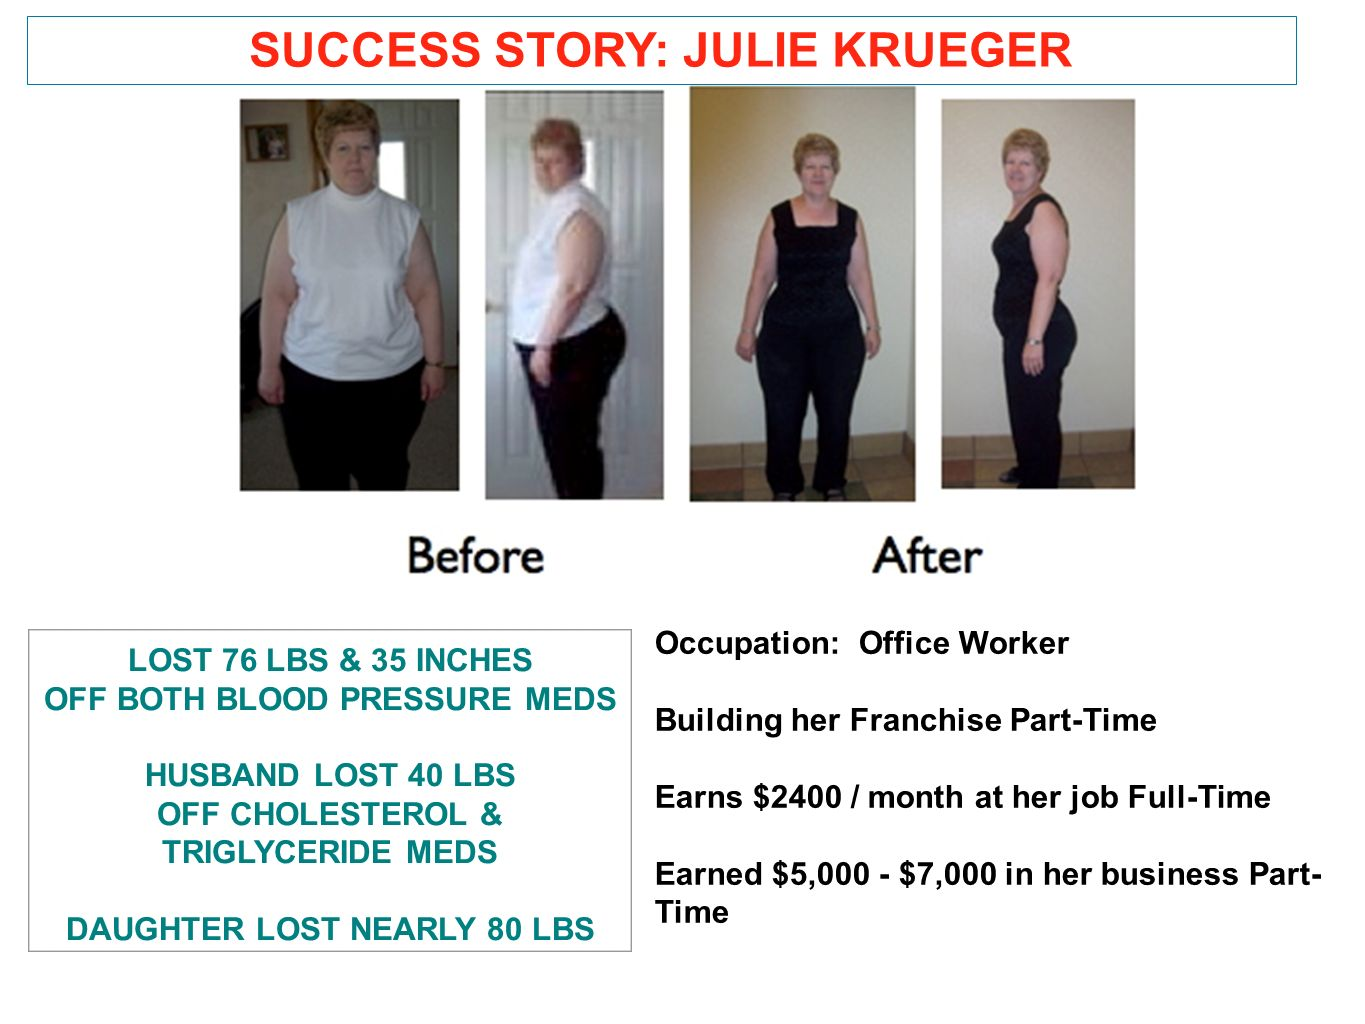 SUCCESS STORY: JULIE KRUEGER Occupation: Office Worker Building her Franchise Part-Time Earns $2400 / month at her job Full-Time Earned $5,000 - $7,000 in her business Part- Time LOST 76 LBS & 35 INCHES OFF BOTH BLOOD PRESSURE MEDS HUSBAND LOST 40 LBS OFF CHOLESTEROL & TRIGLYCERIDE MEDS DAUGHTER LOST NEARLY 80 LBS